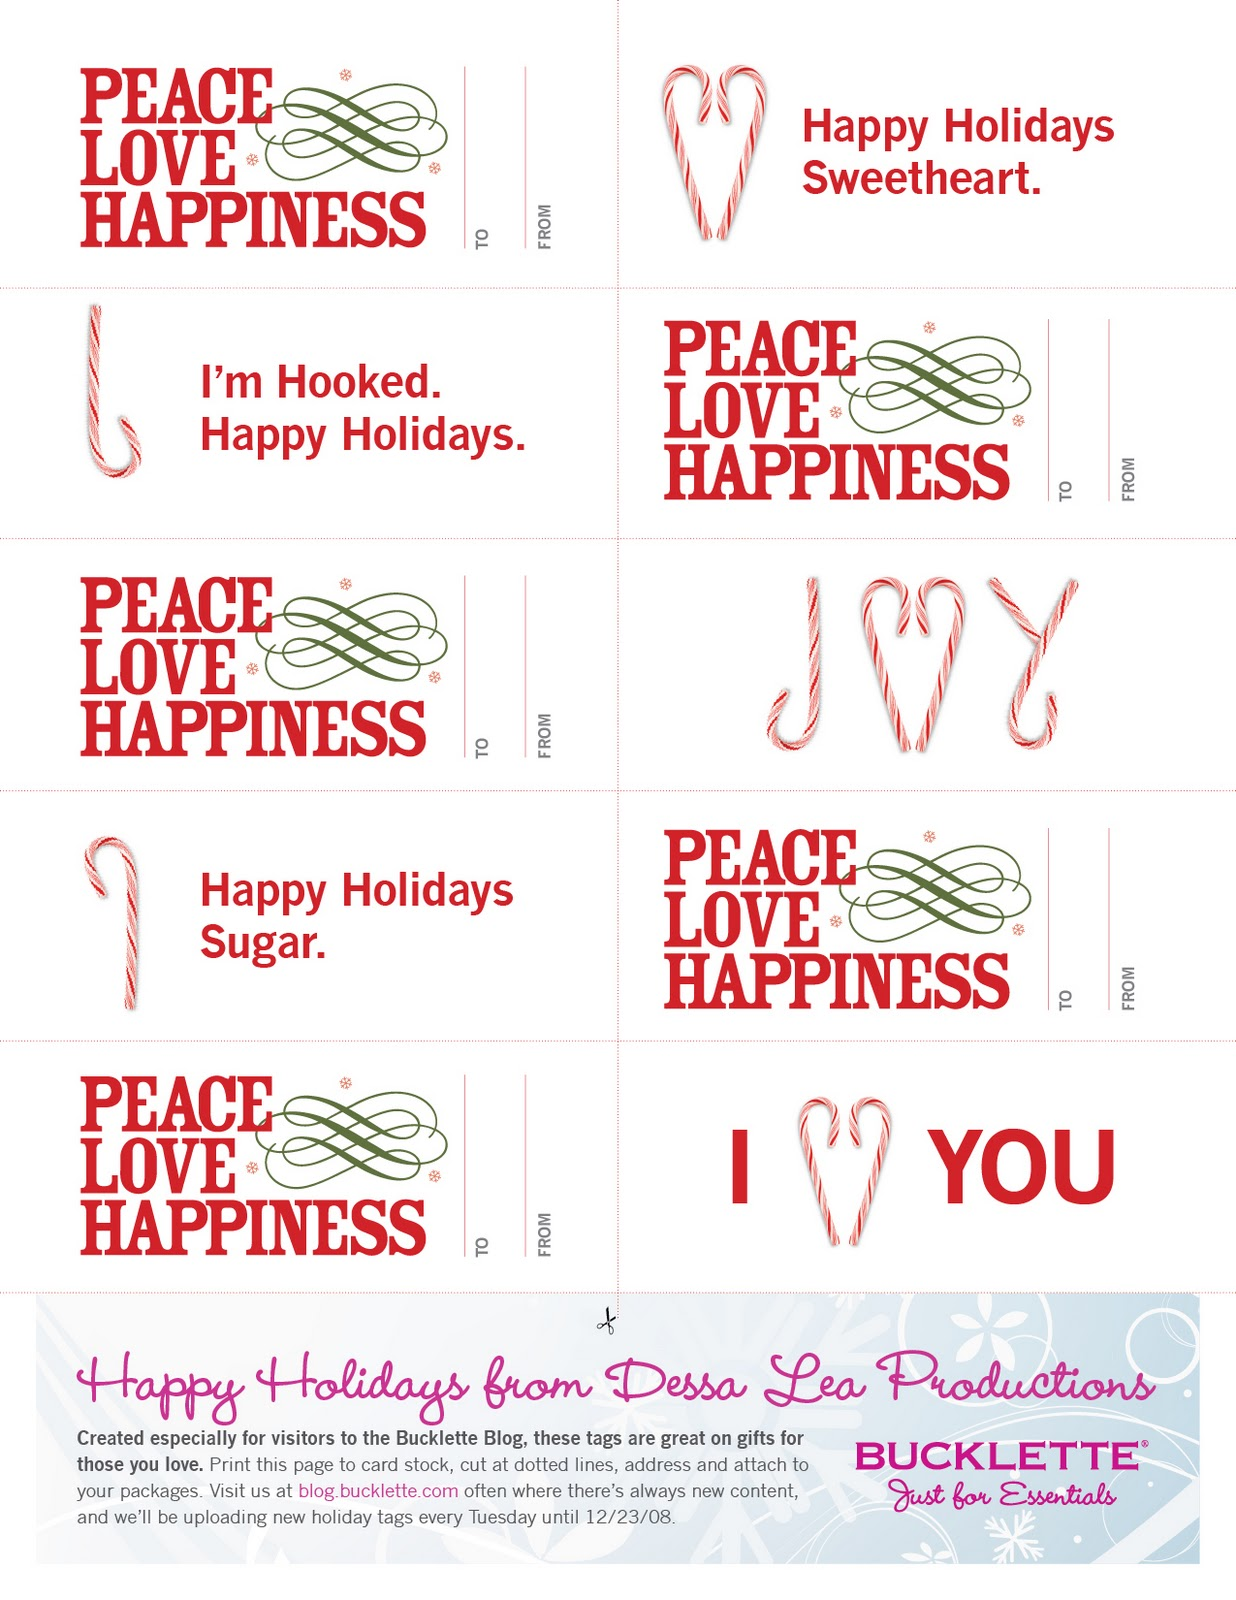 image regarding Grinch Pills Free Printable named Cost-free Xmas Printables and Present Tips - Generating Reminiscences